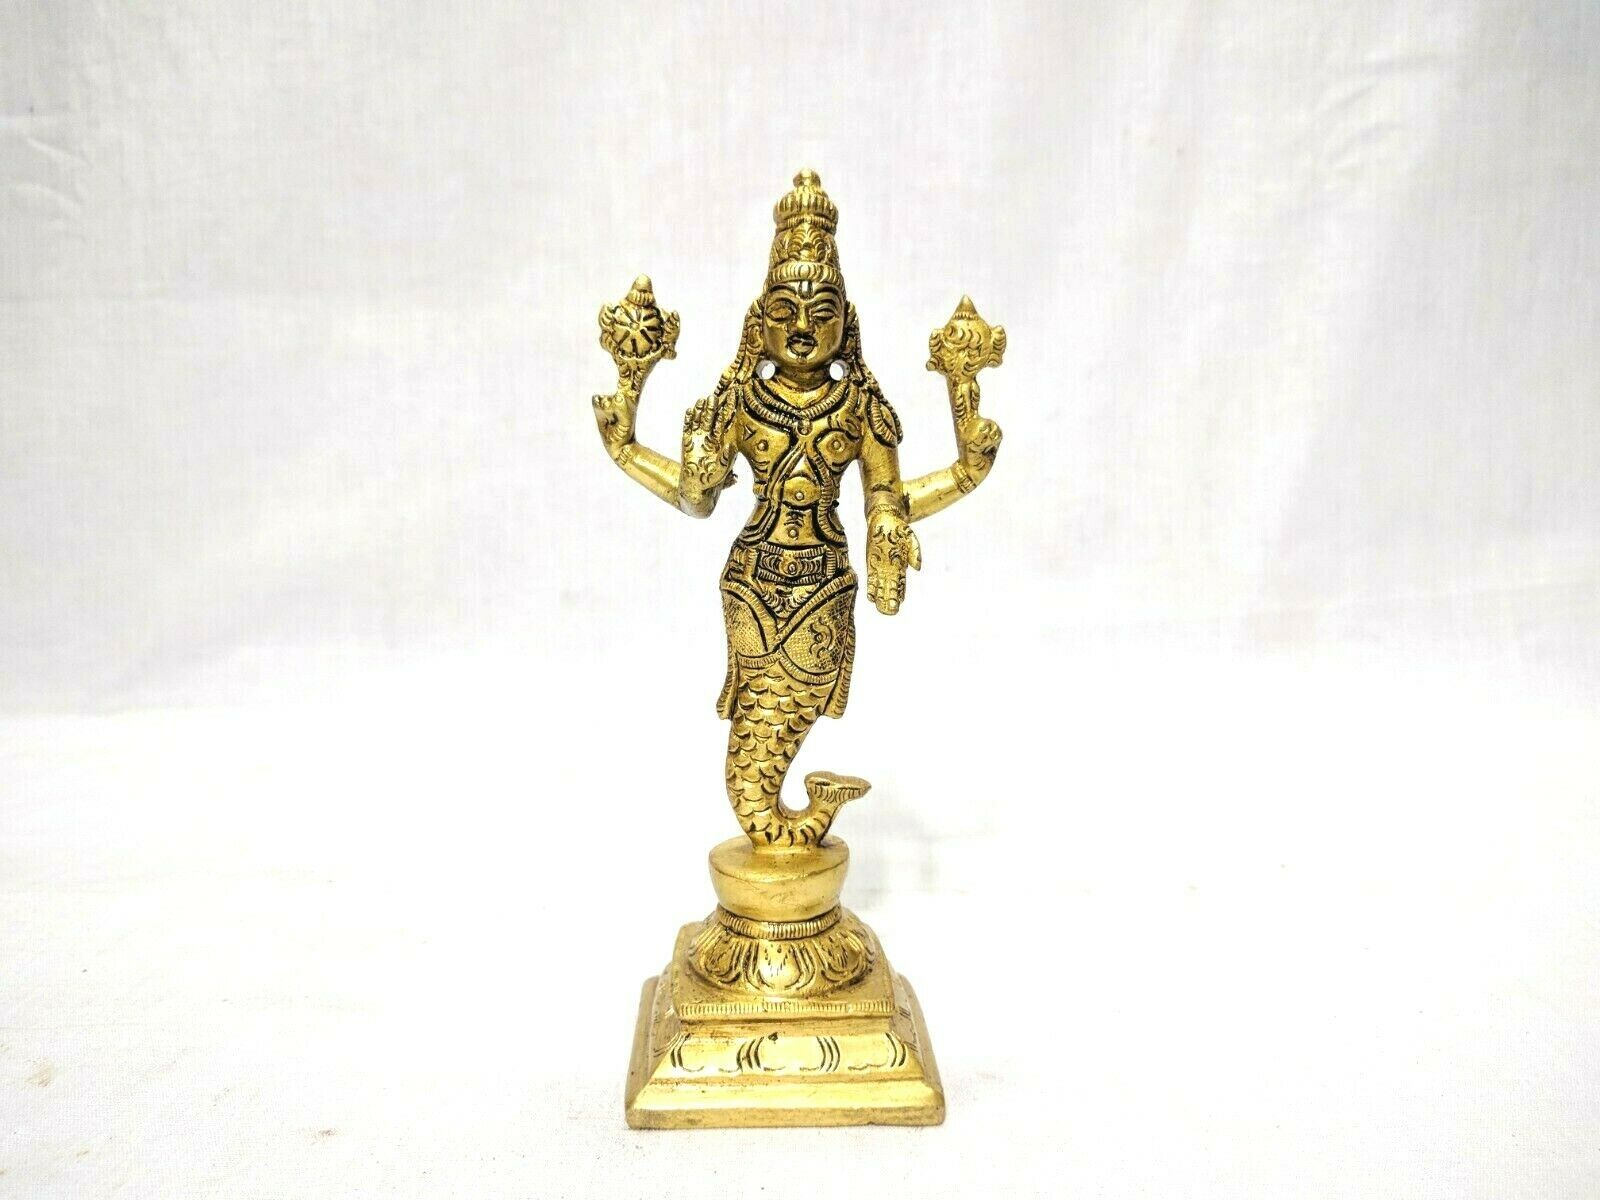 Dashavatar Brass Statue Vishnu Ten Avatar God Pooja Figurine Temple Art Decor Без бренда - фотография #2